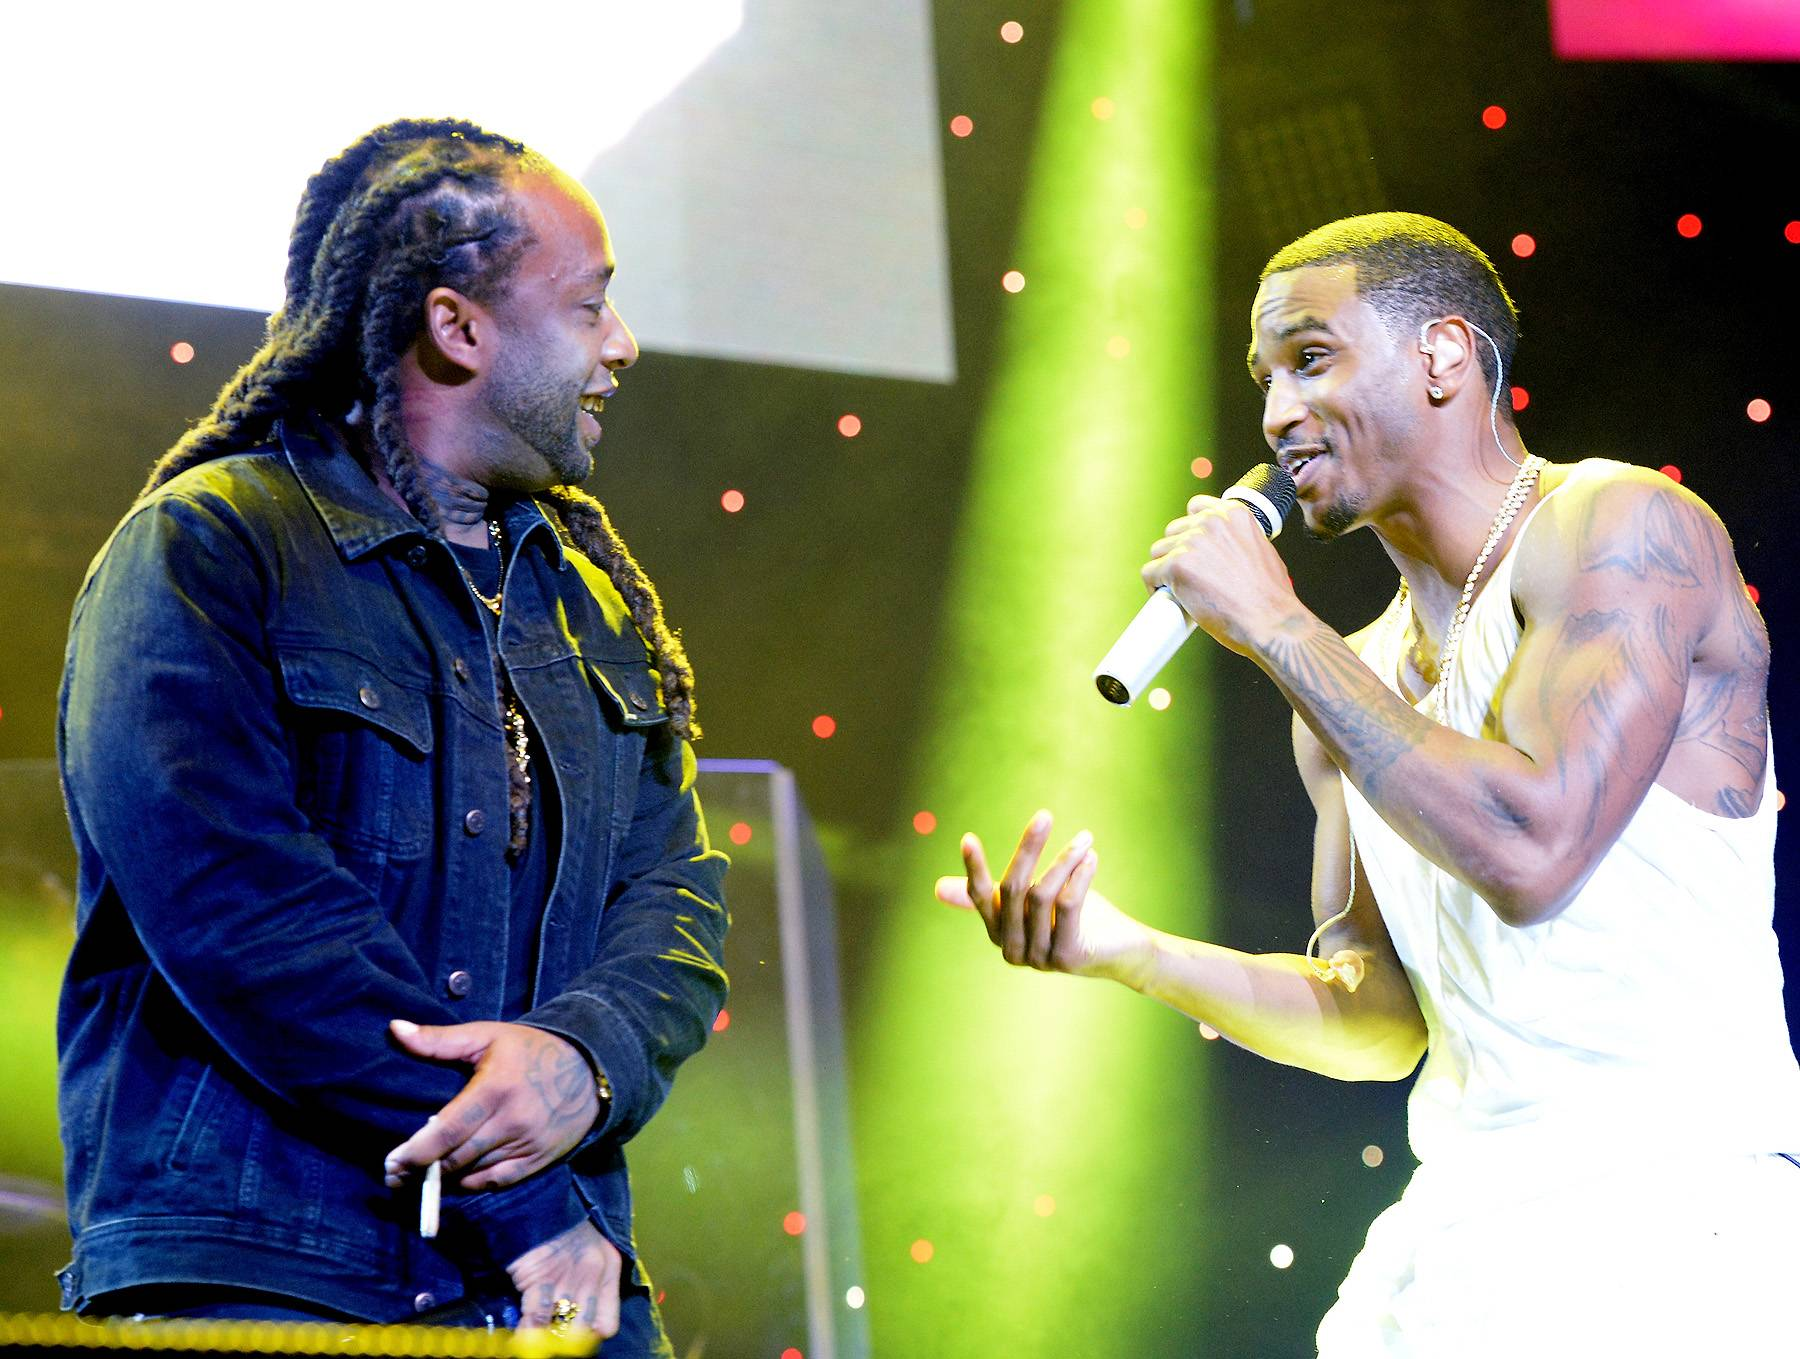 Guest Spots - Ty Dolla $ign was the first surprise guestsTrey Songz lined up for the night. (Photo: Earl Gibson/BET/Getty Images for BET)